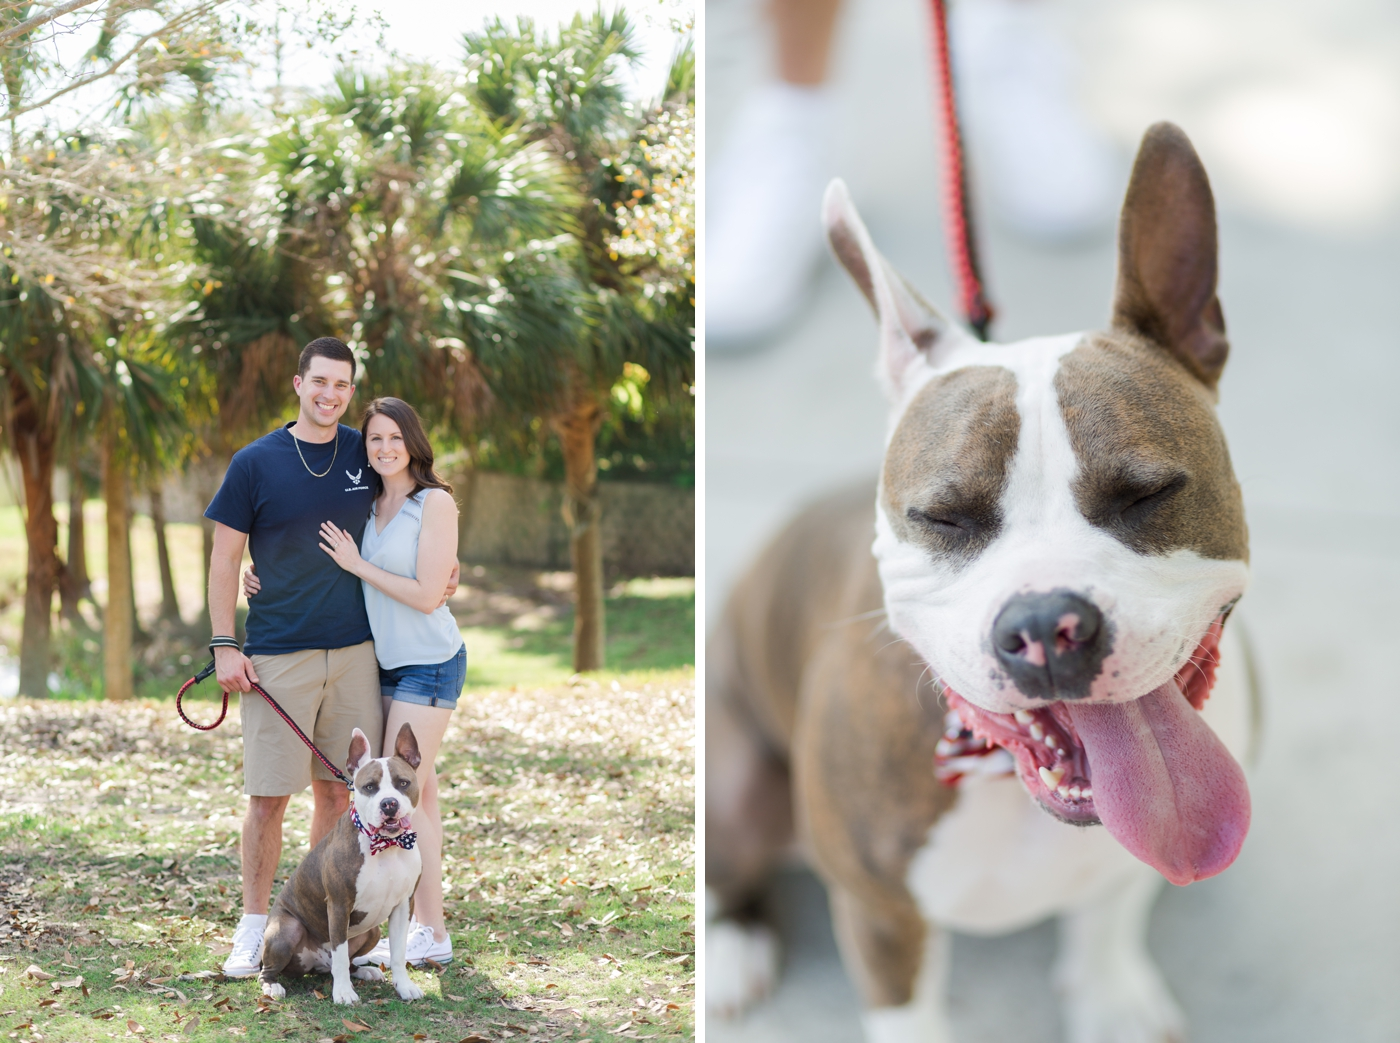 Pet Photography Fundraiser for Orlando Animal Rescue, The